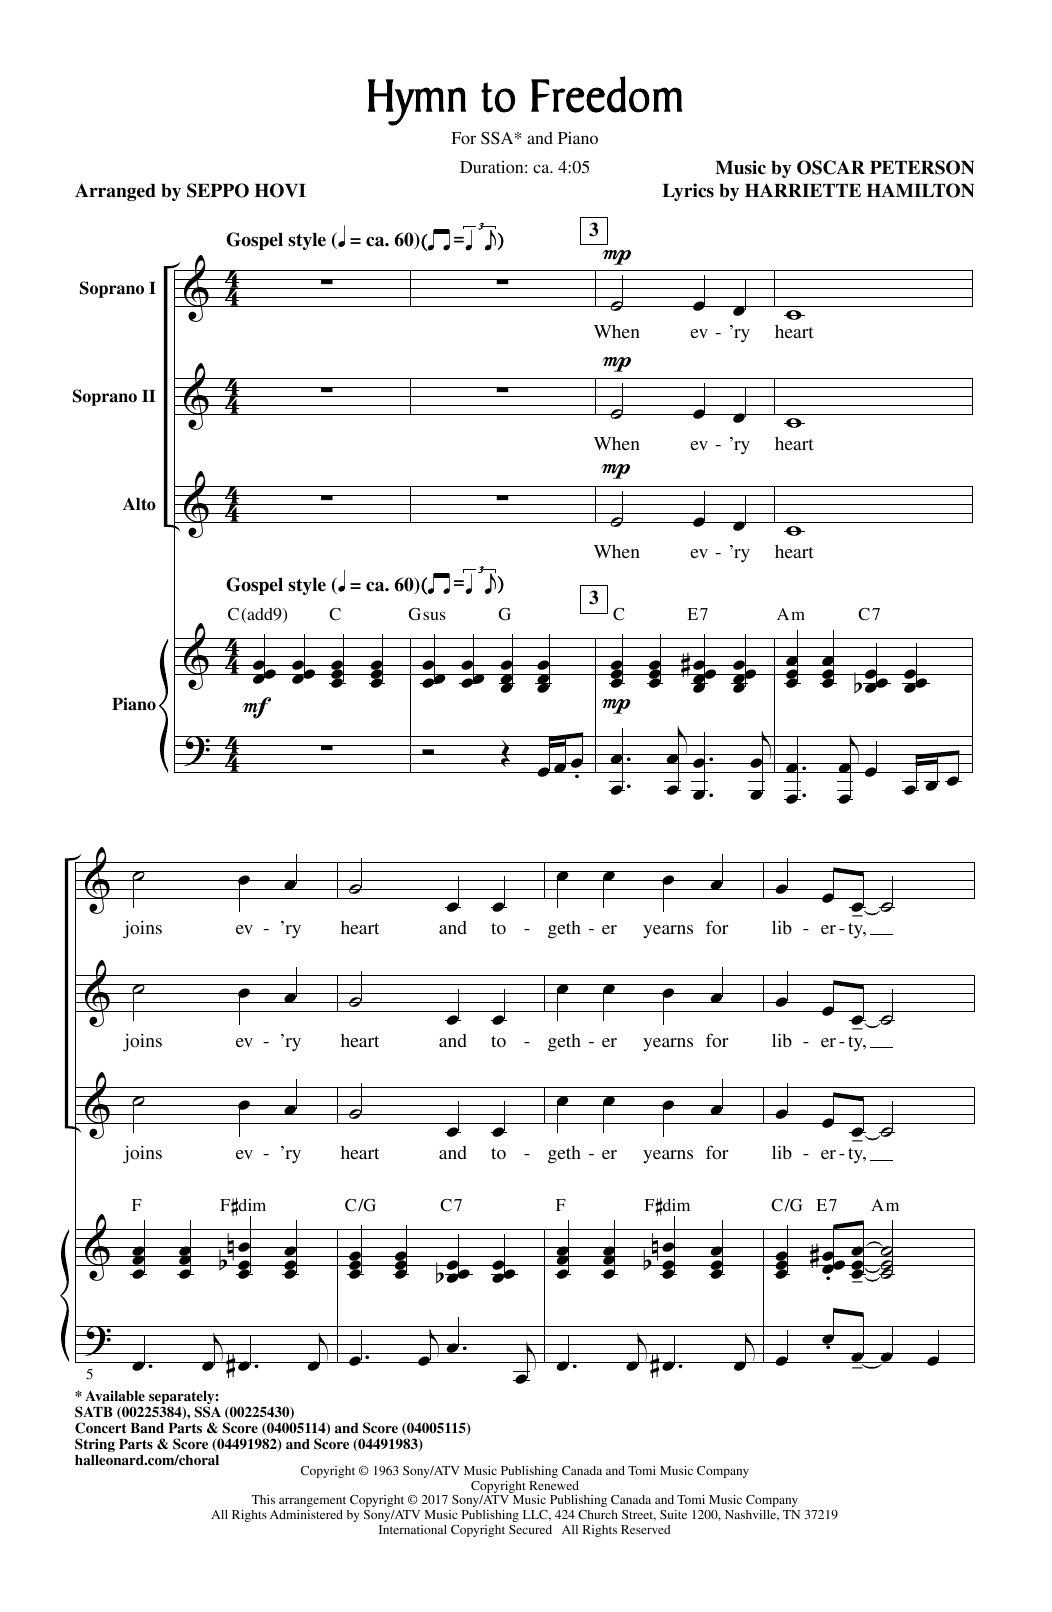 Oscar Peterson Hymn To Freedom (arr. Seppo Hovi) sheet music notes and chords. Download Printable PDF.